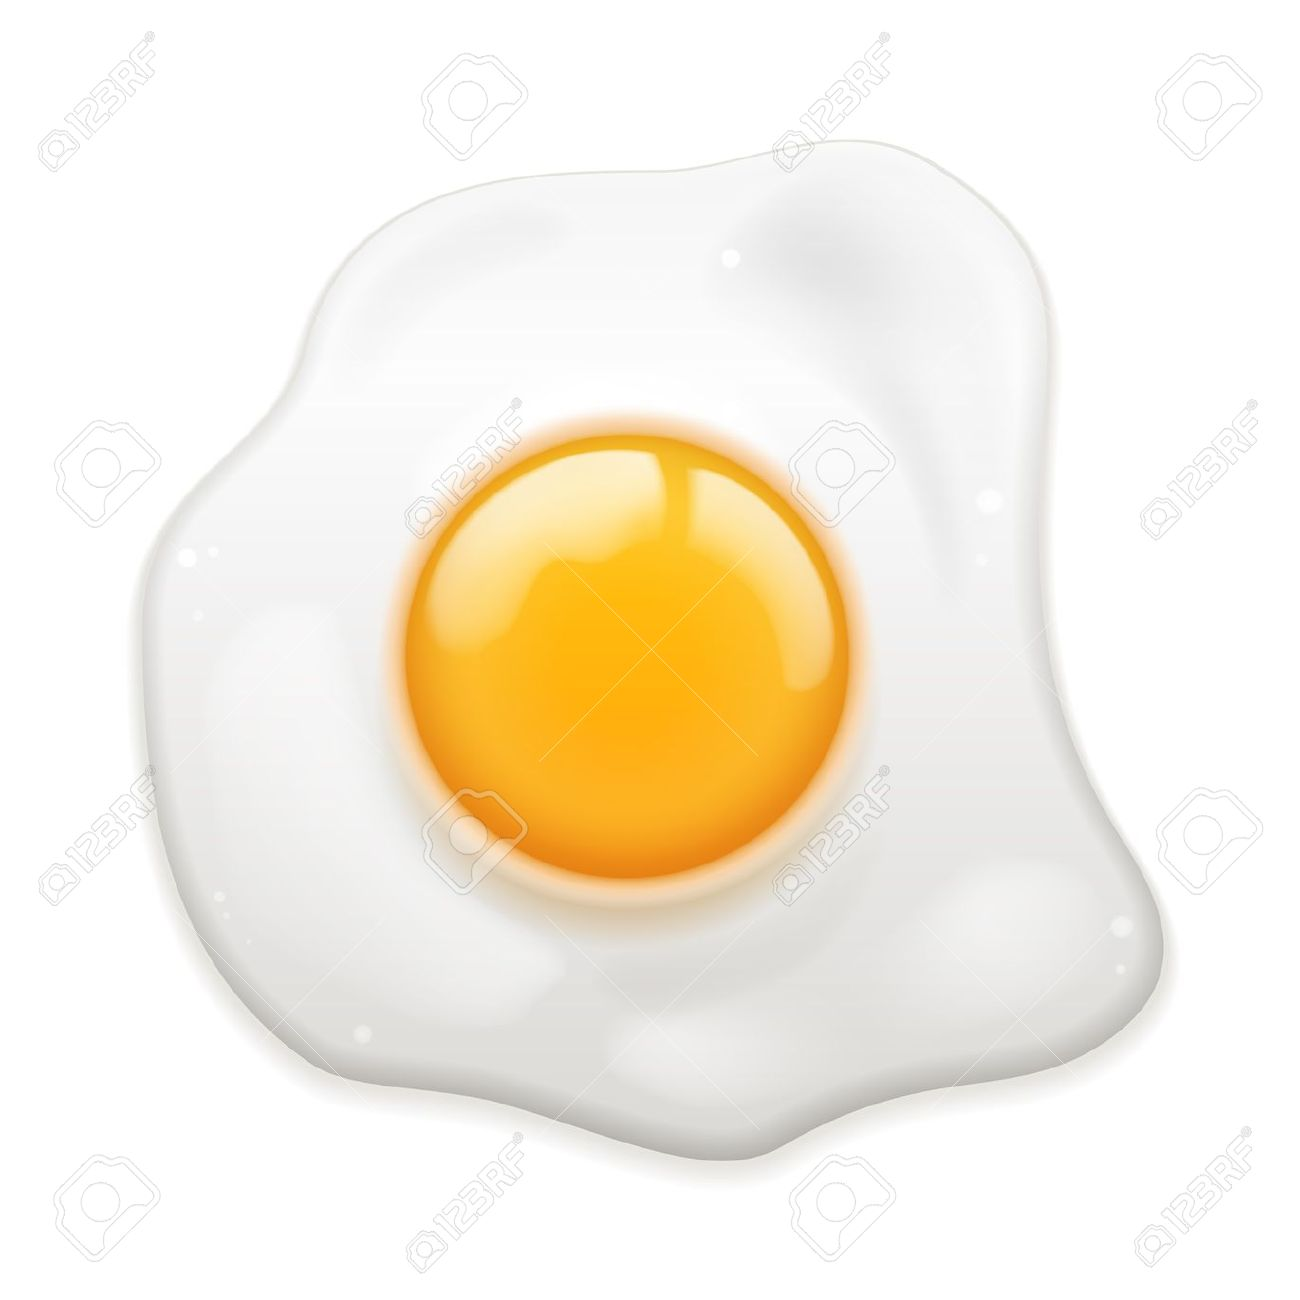 Clipart yolk picture library stock Easter egg yolk clipart - ClipartFest picture library stock